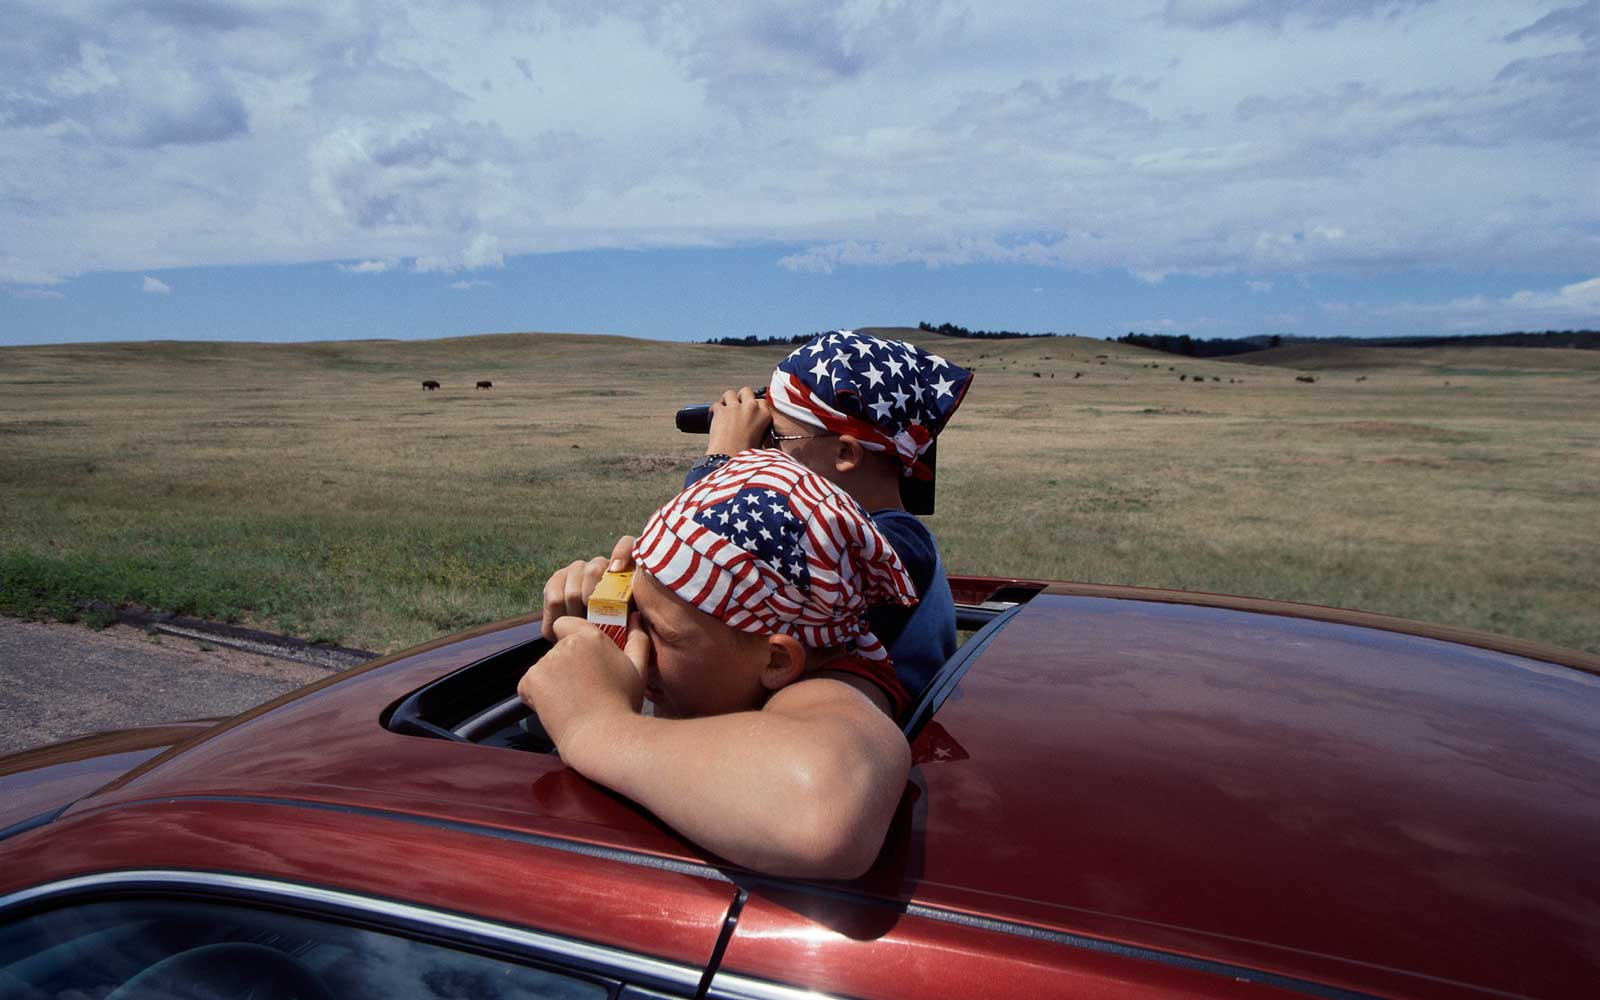 Two Young Men Taking Photographs from Automobile Sunroof